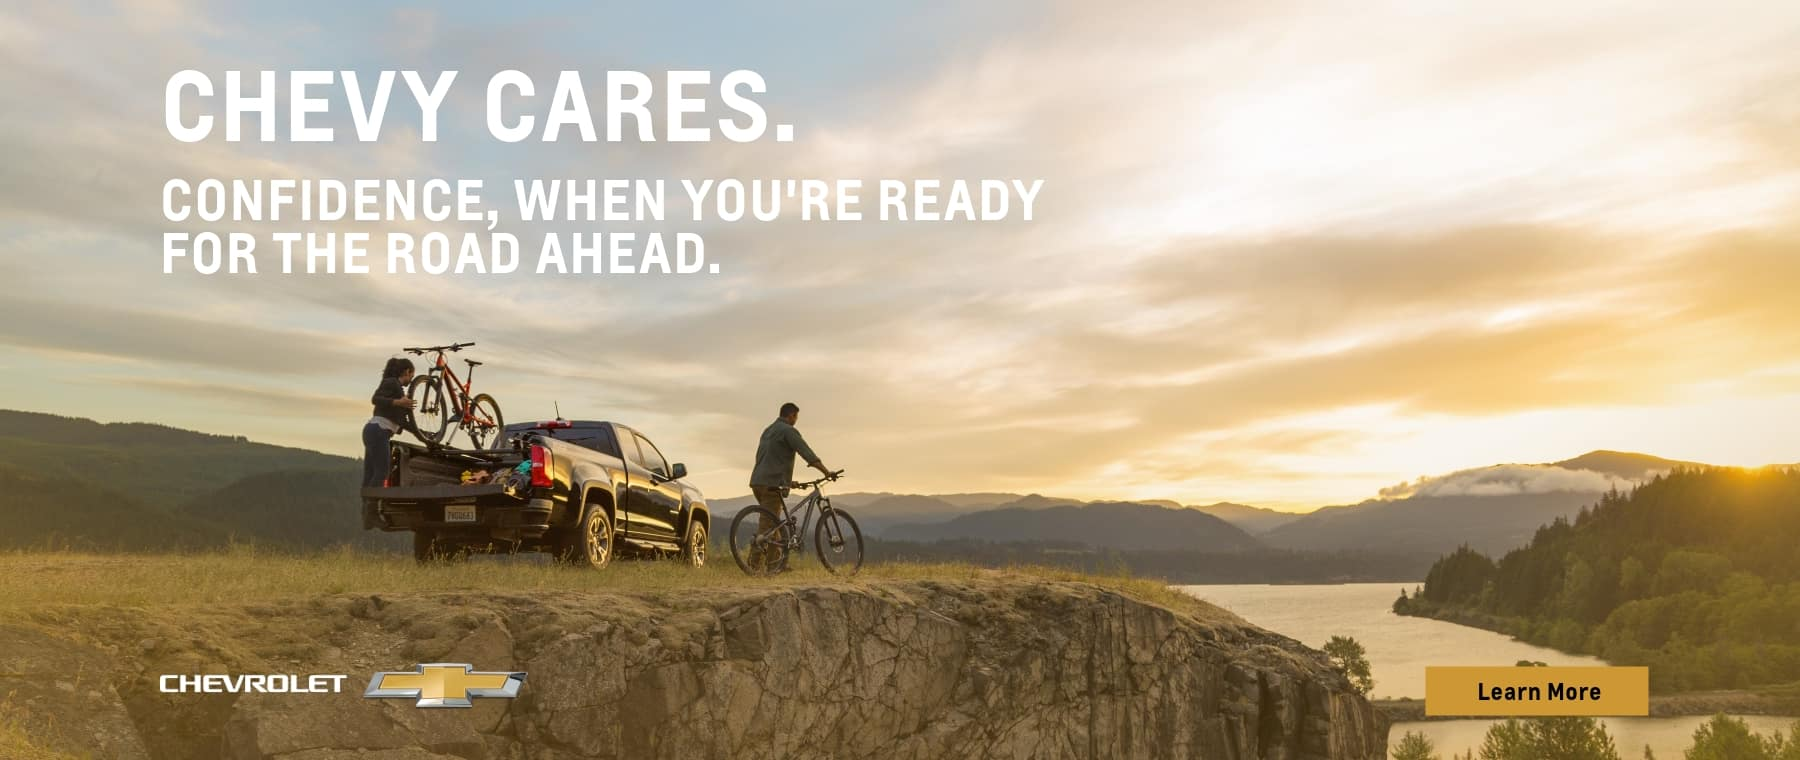 18_2020_NOVEMBER_CHEVY CARES GENERIC_NATIONAL_1800x760